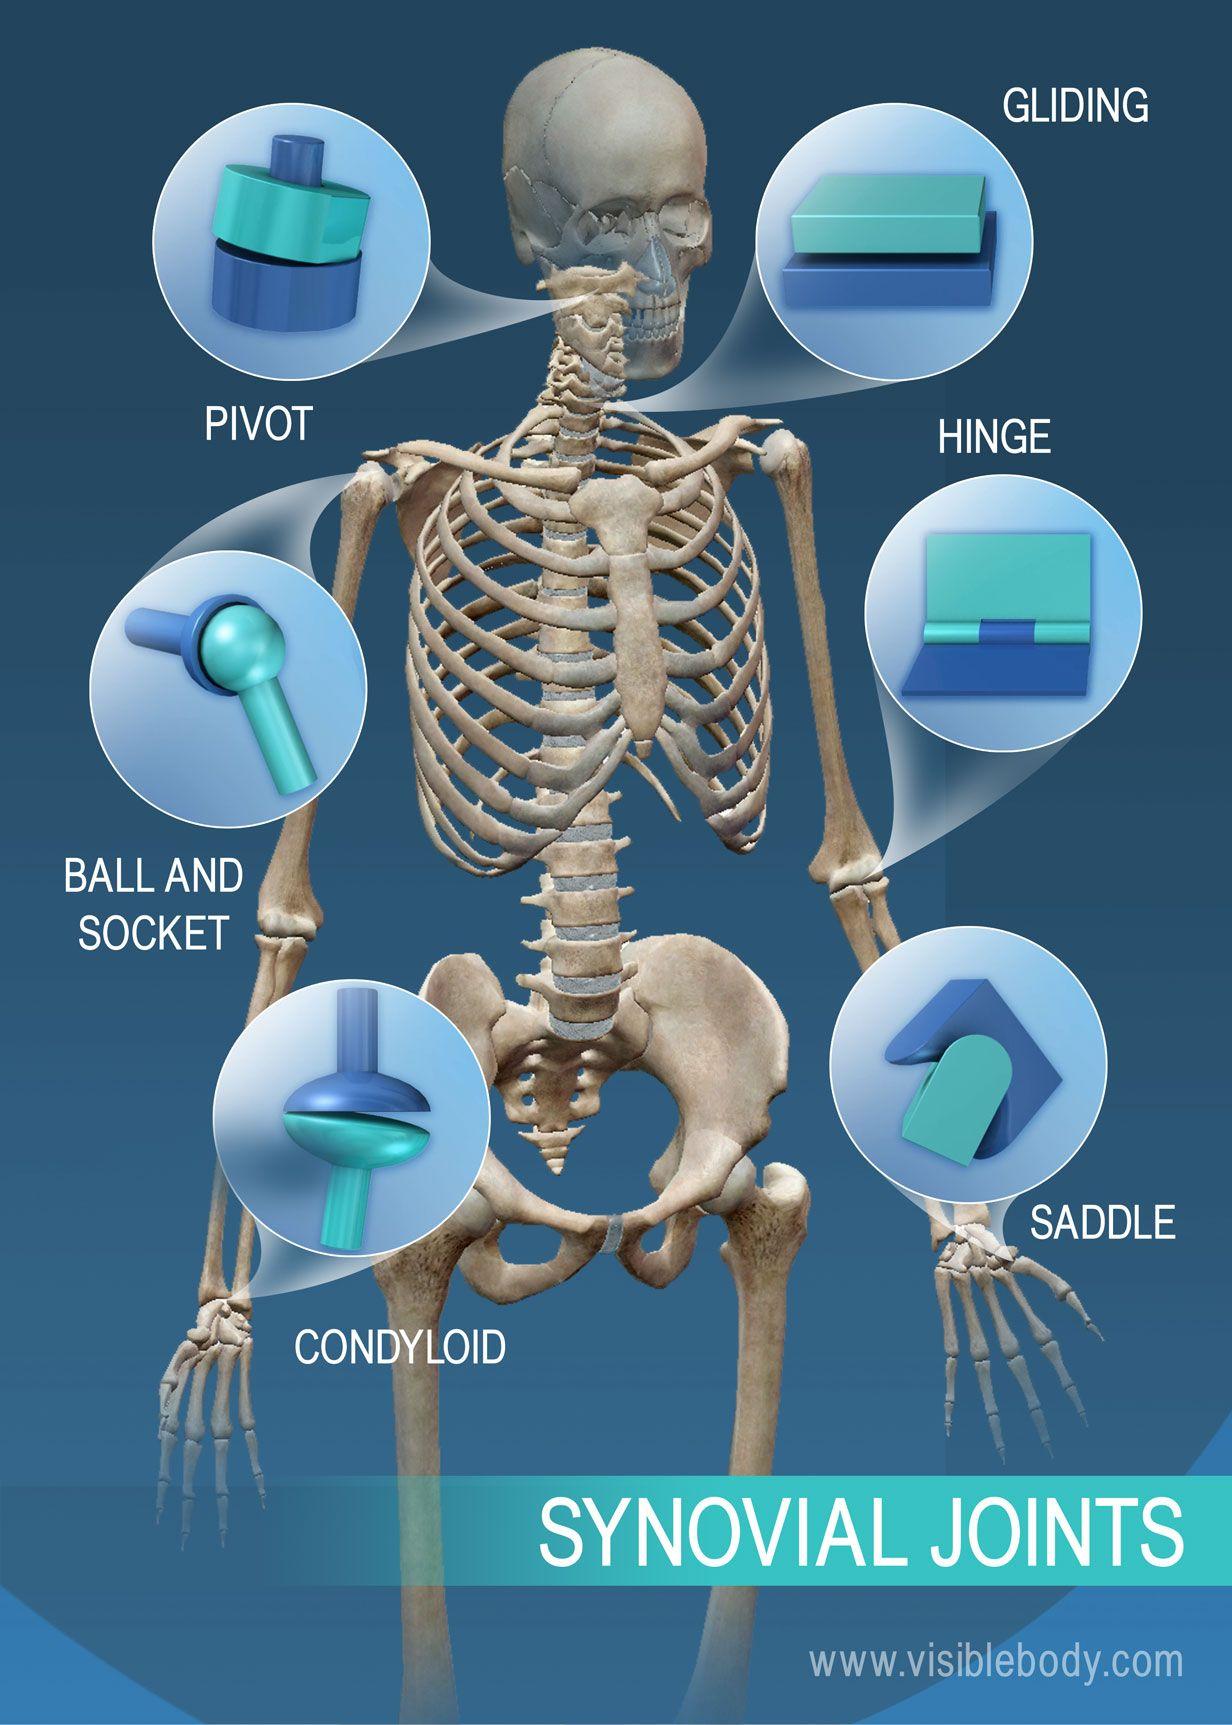 Pivot Joint Diagram C5 Corvette Power Seat Wiring The Range Of Motion In Synovial Joints Ball And